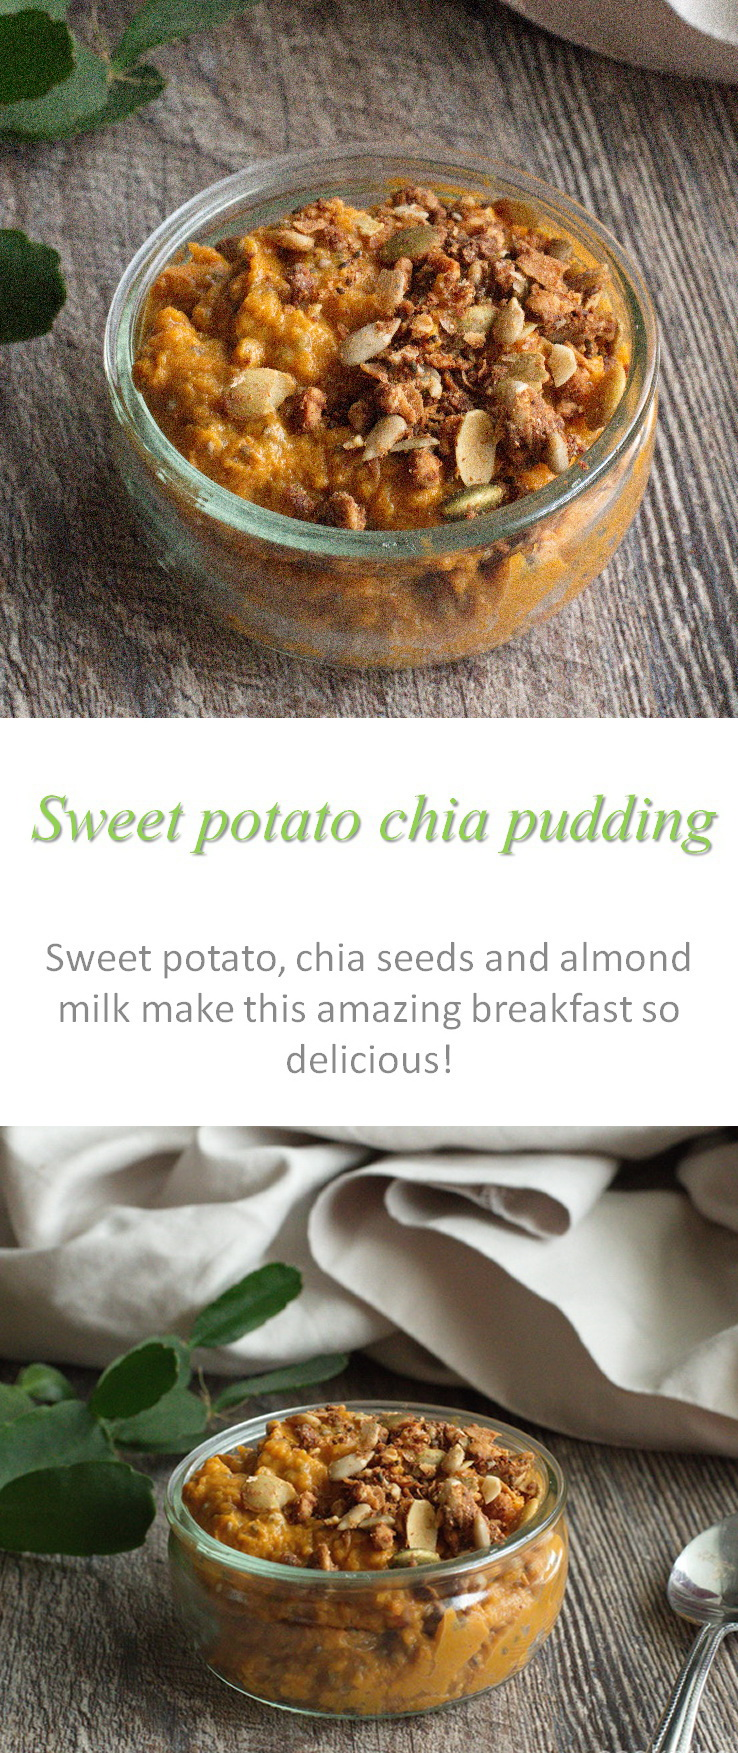 A delicious Paleo-friendly sweet potato chia pudding, an easy way to eat more veggies in the morning, or as a snack, or as whenever! #chiapudding #sweetpotato #cookathome #glutenfree #dairyfree